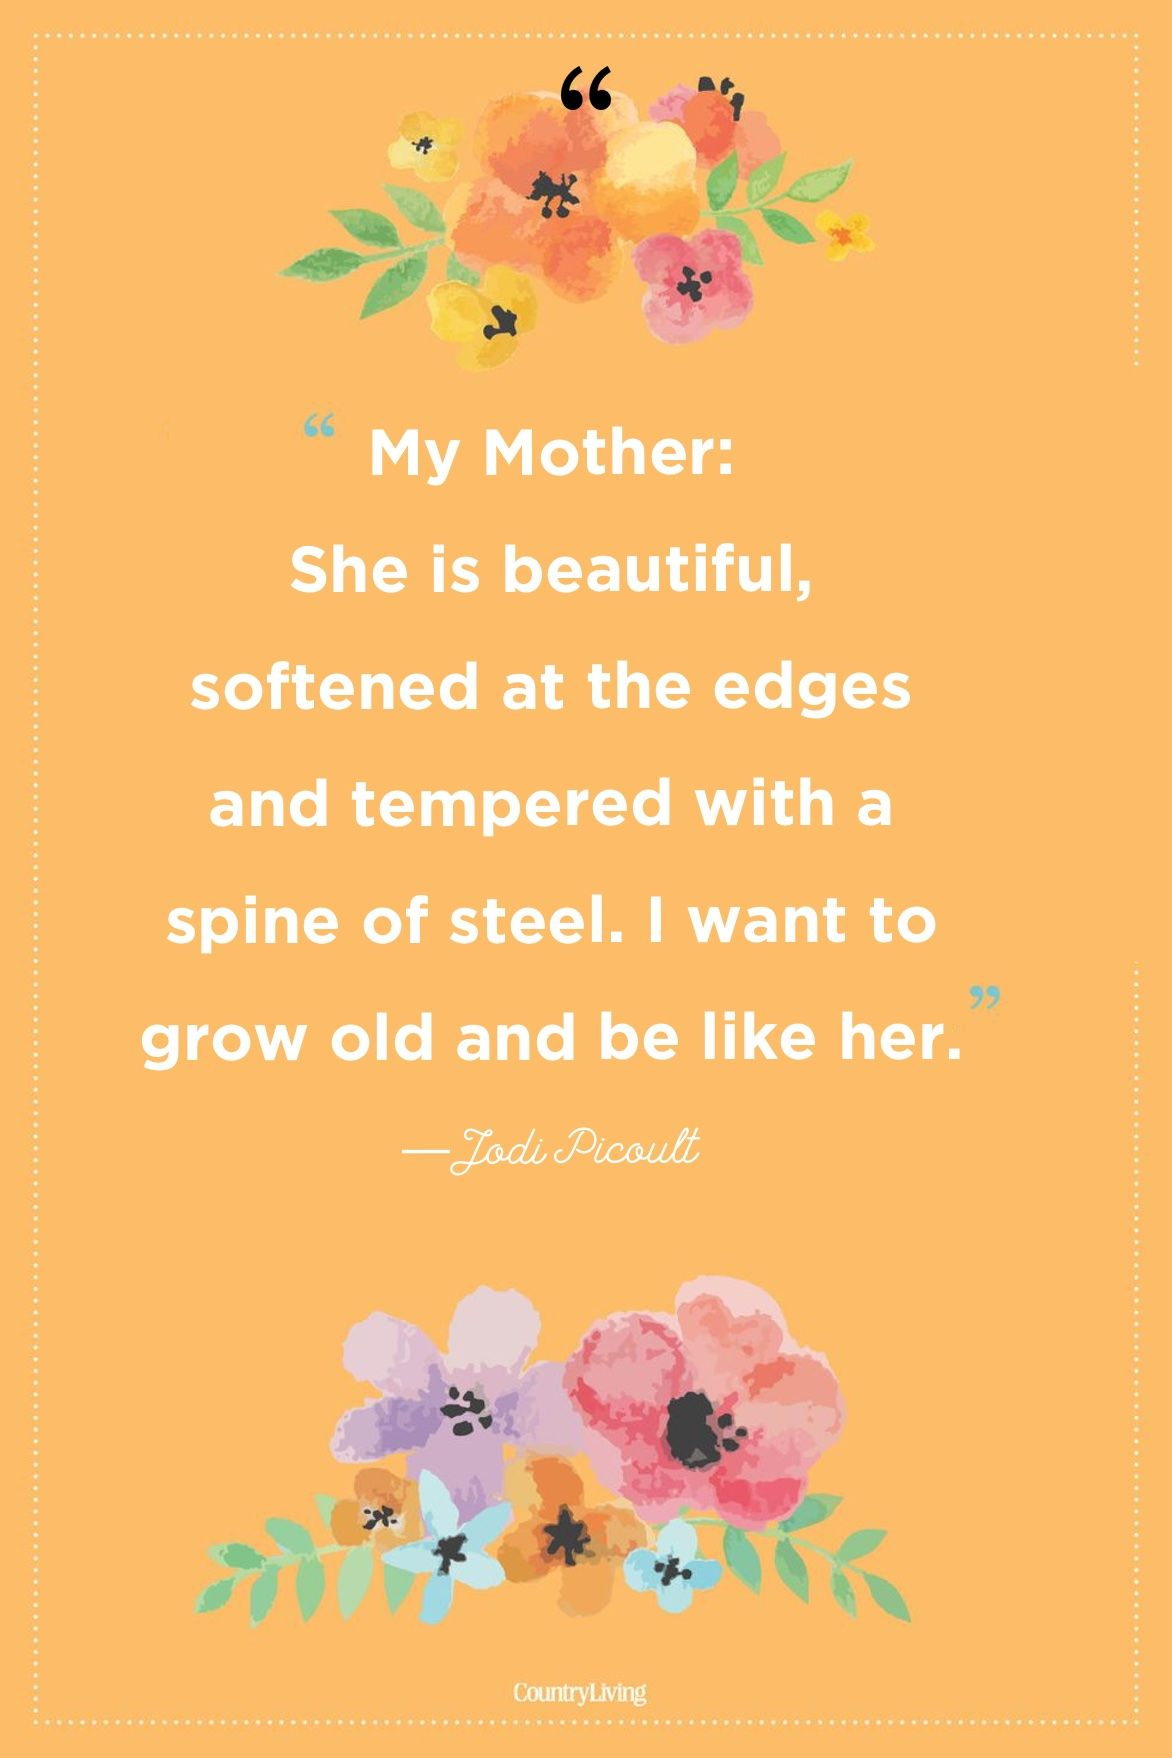 10 Best Mothers Day Quotes And Poems - Meaningful Happy Mother